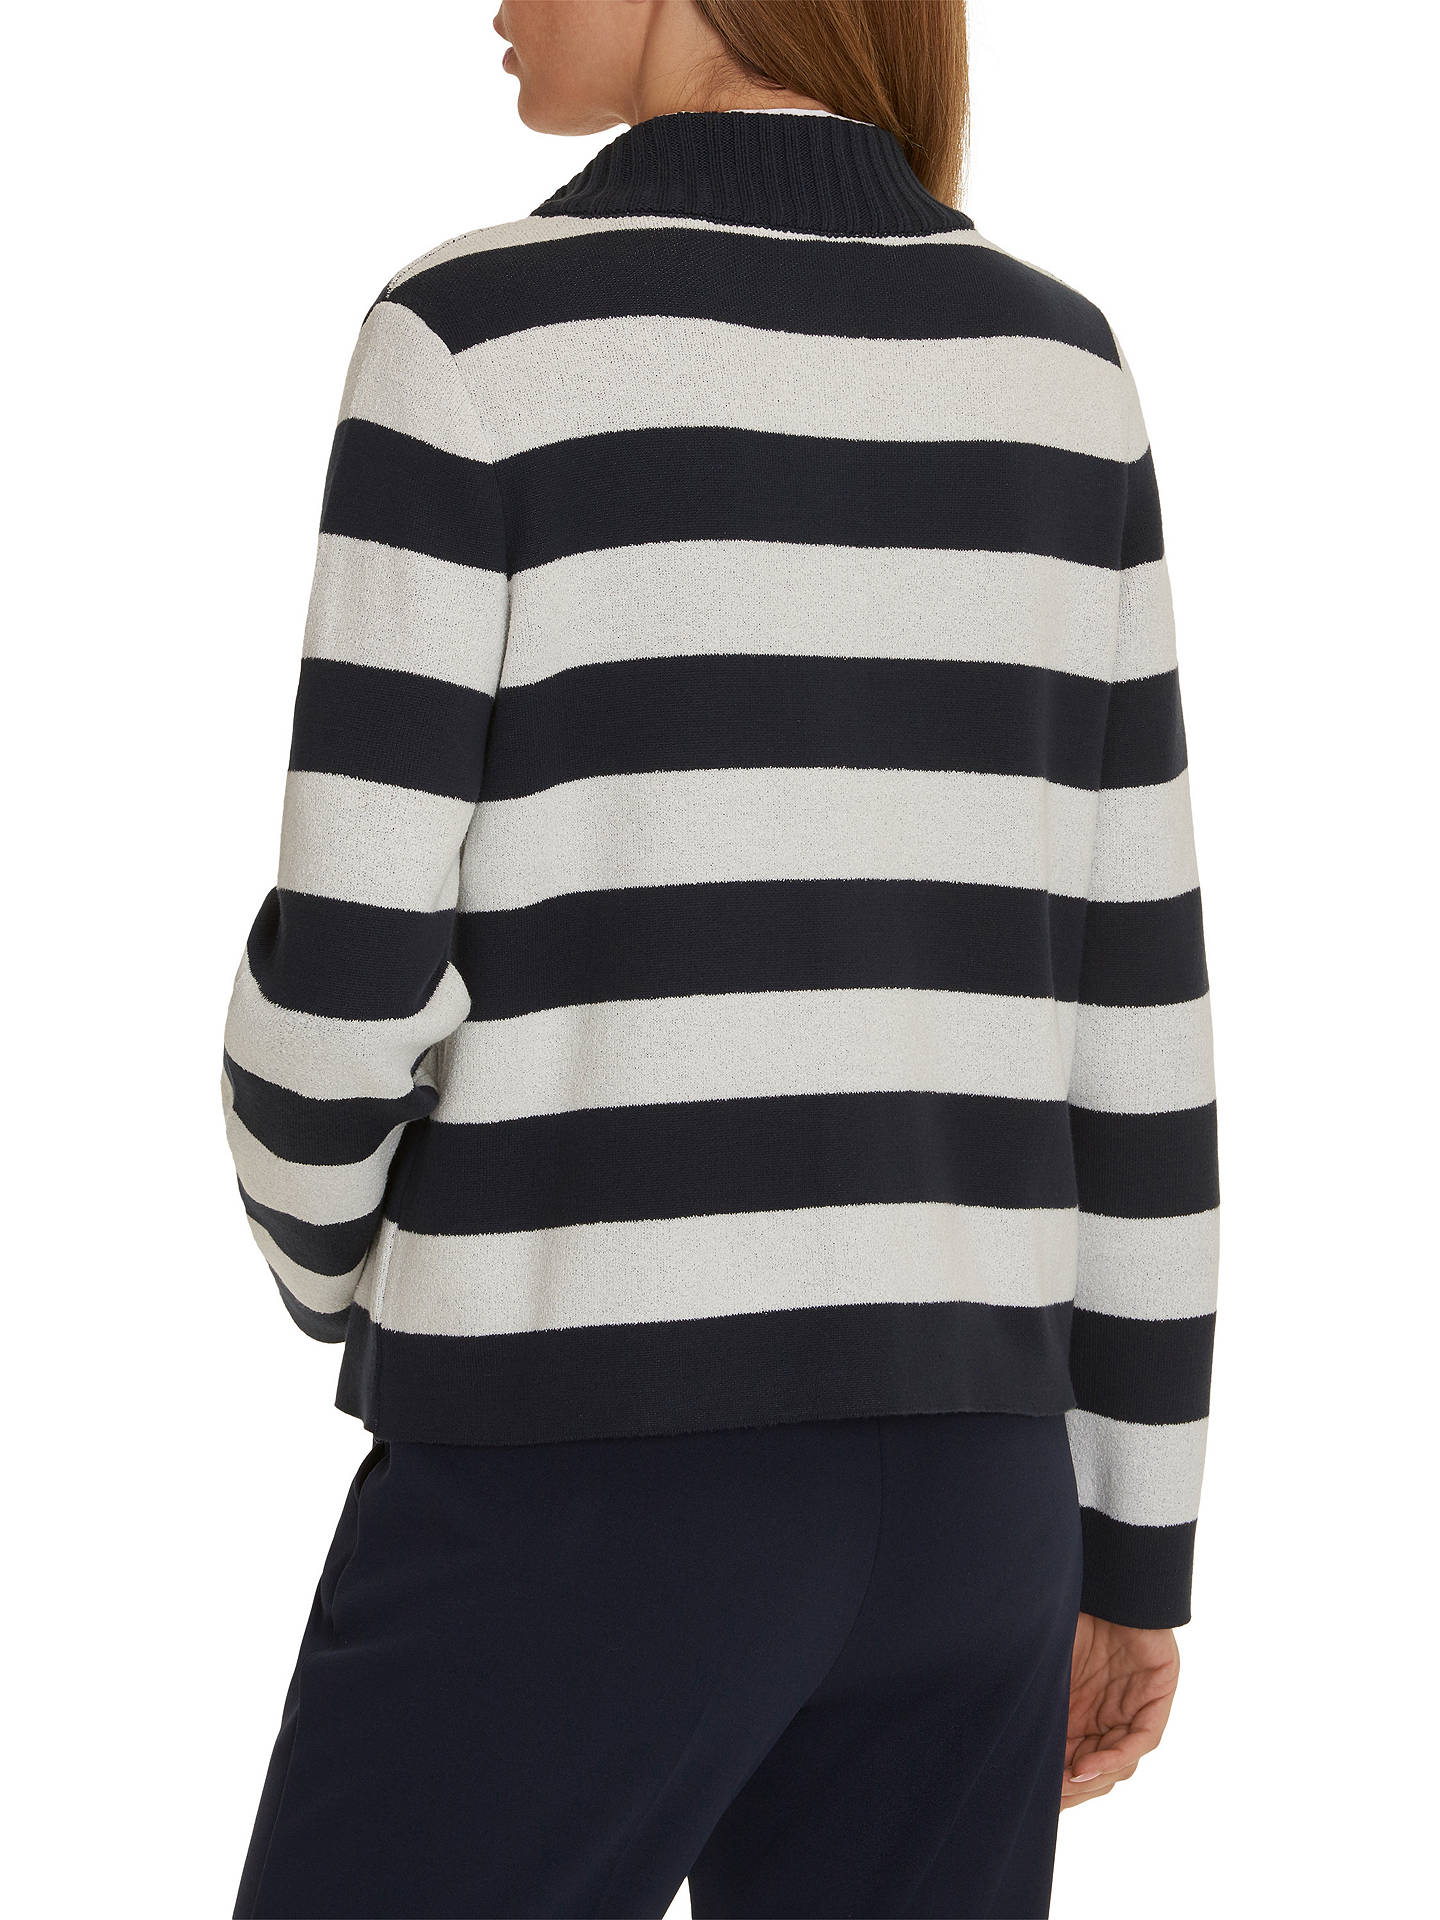 Buy Betty Barclay Striped Cardigan, Dark Blue/Cream, 10 Online at johnlewis.com